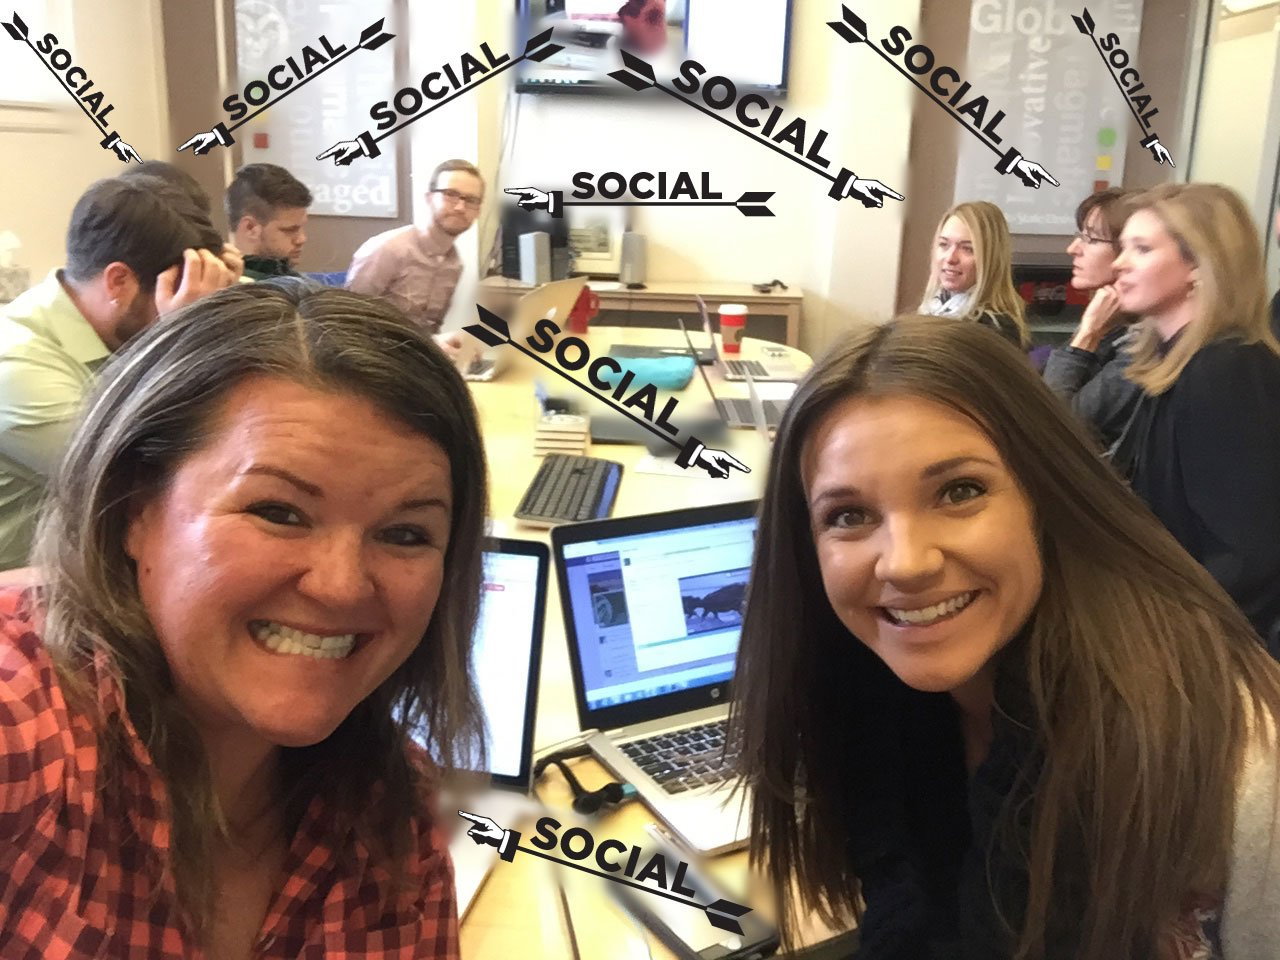 #CSUSocial getting even more (not to be confused with Evan Moore @evancmo) social. #HESM15 https://t.co/c7NdLtpIb4